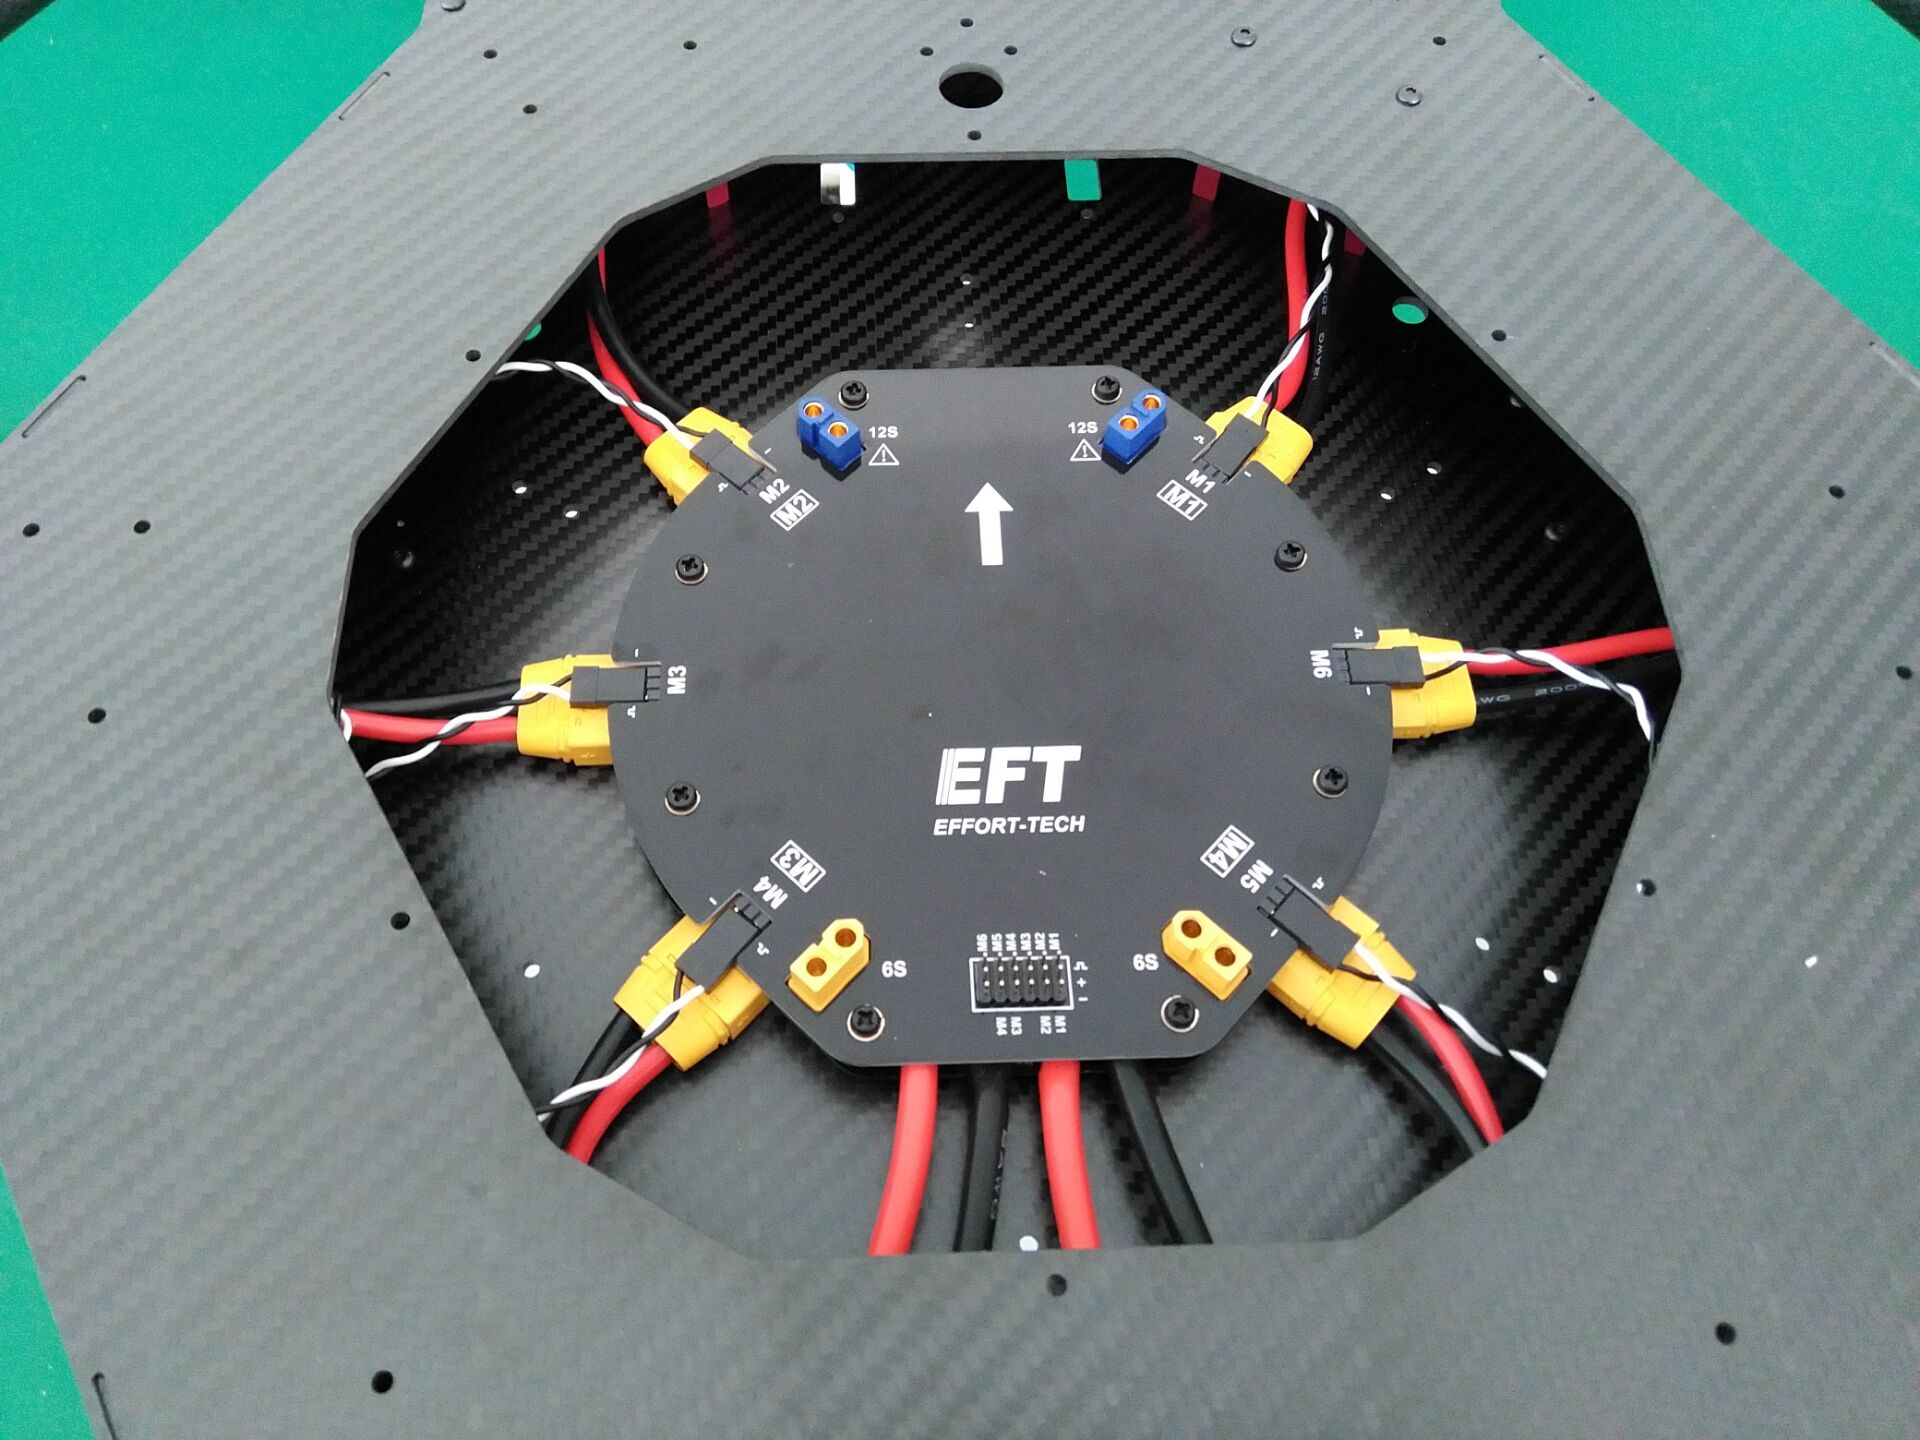 Eft High Current Power Distribution Board 4 6 Axes